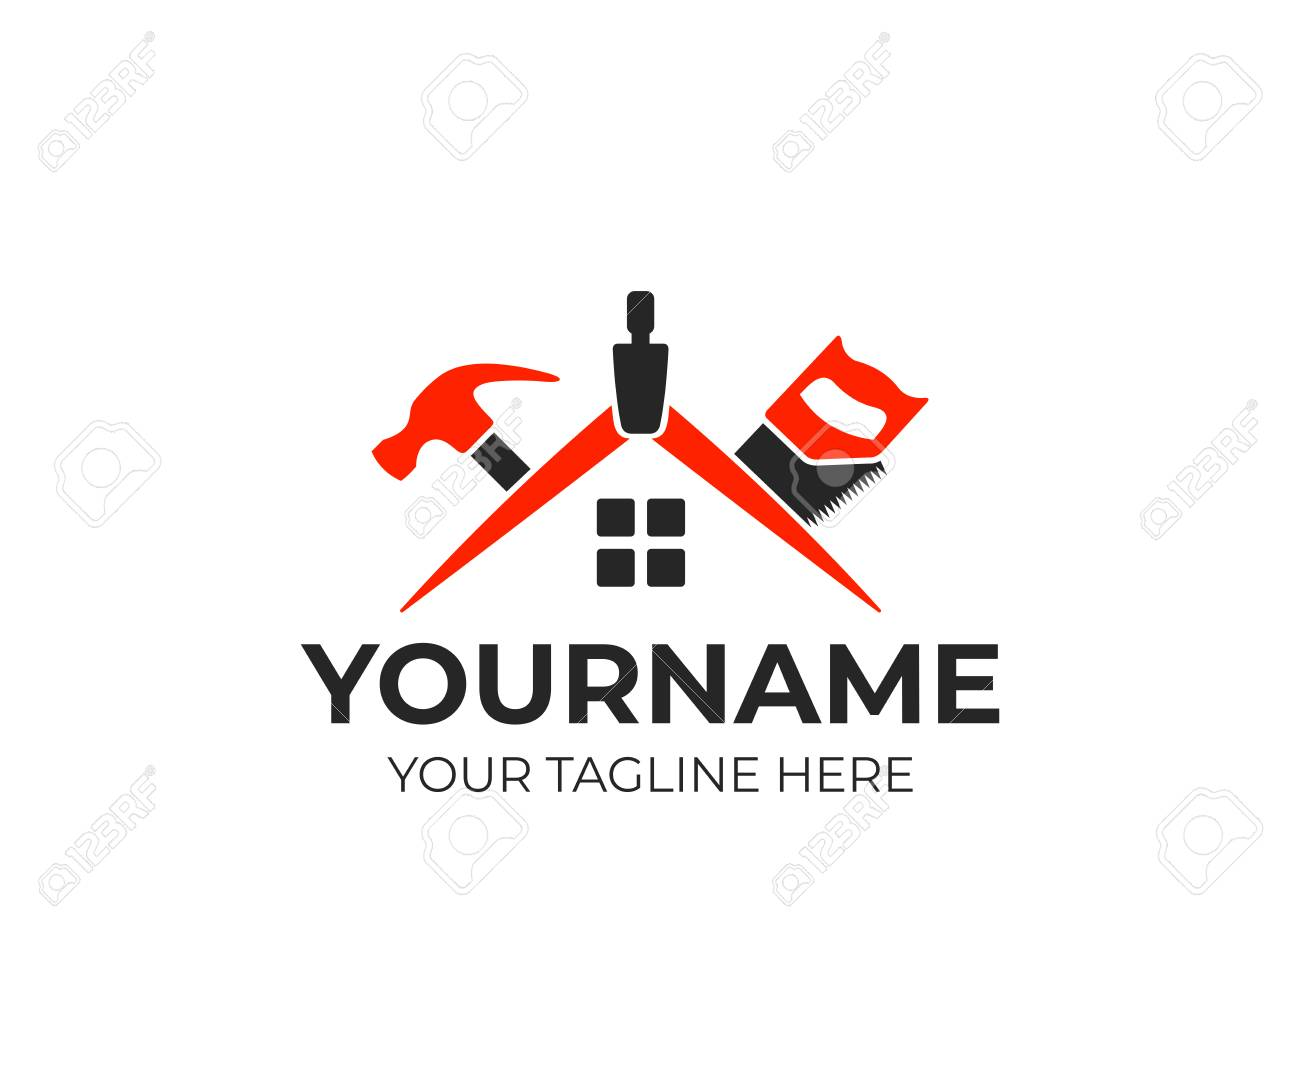 Roof Of House From Geometry Compass Saw And Hammer Logo Template Royalty Free Cliparts Vectors And Stock Illustration Image 102497664